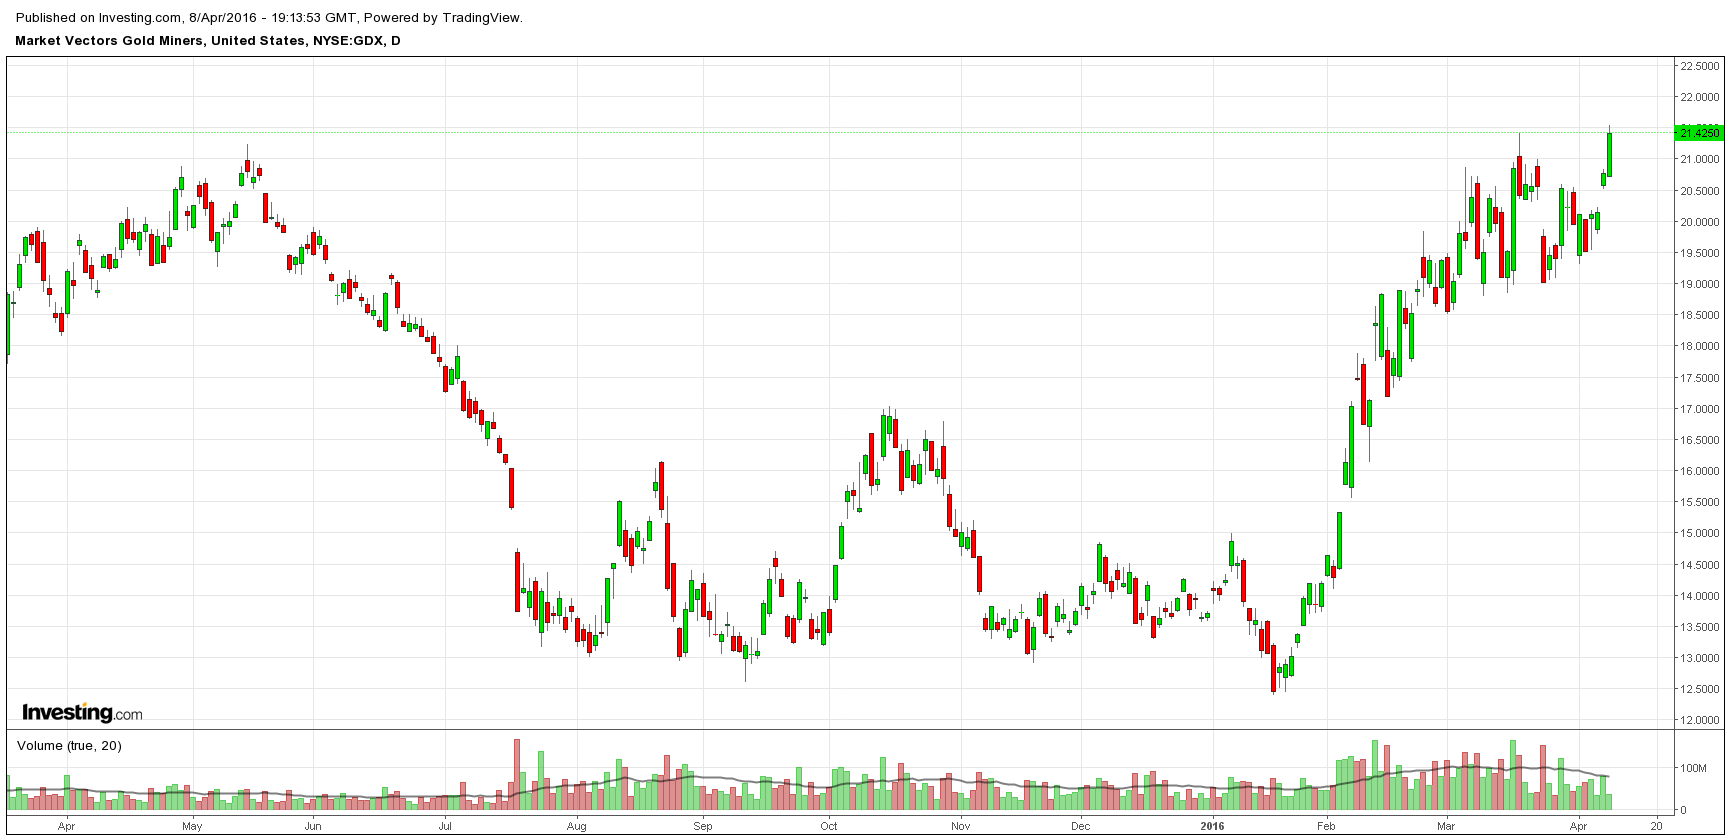 GDX breaking out above last months highs, should allow for steady upward progress